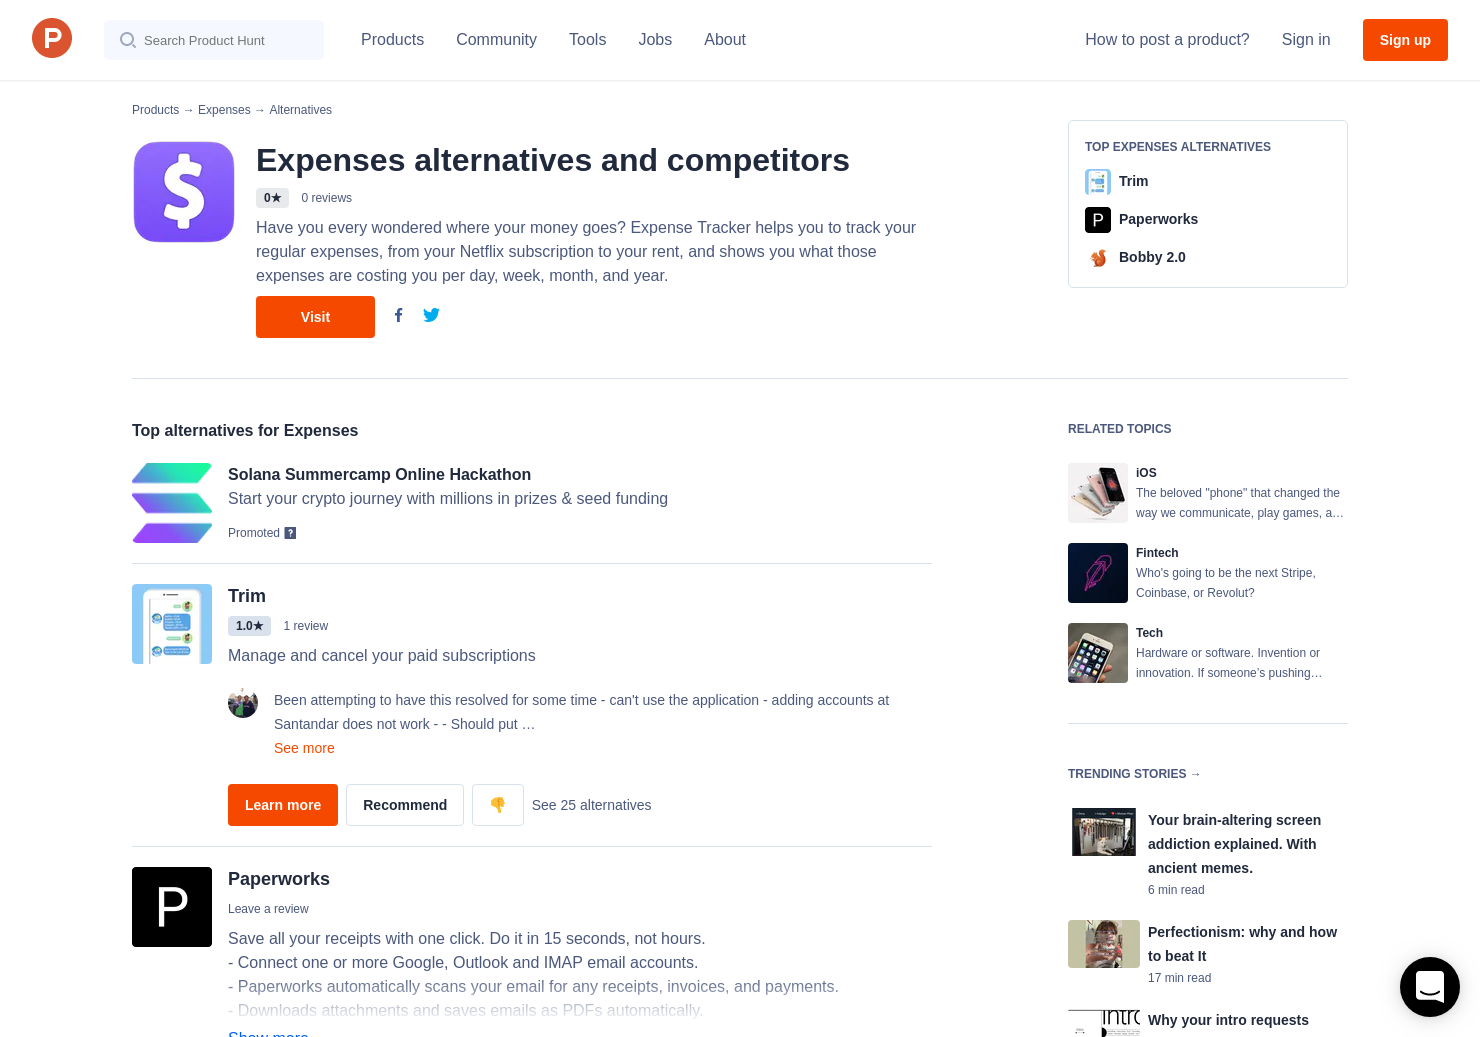 14 alternatives to expenses for iphone product hunt